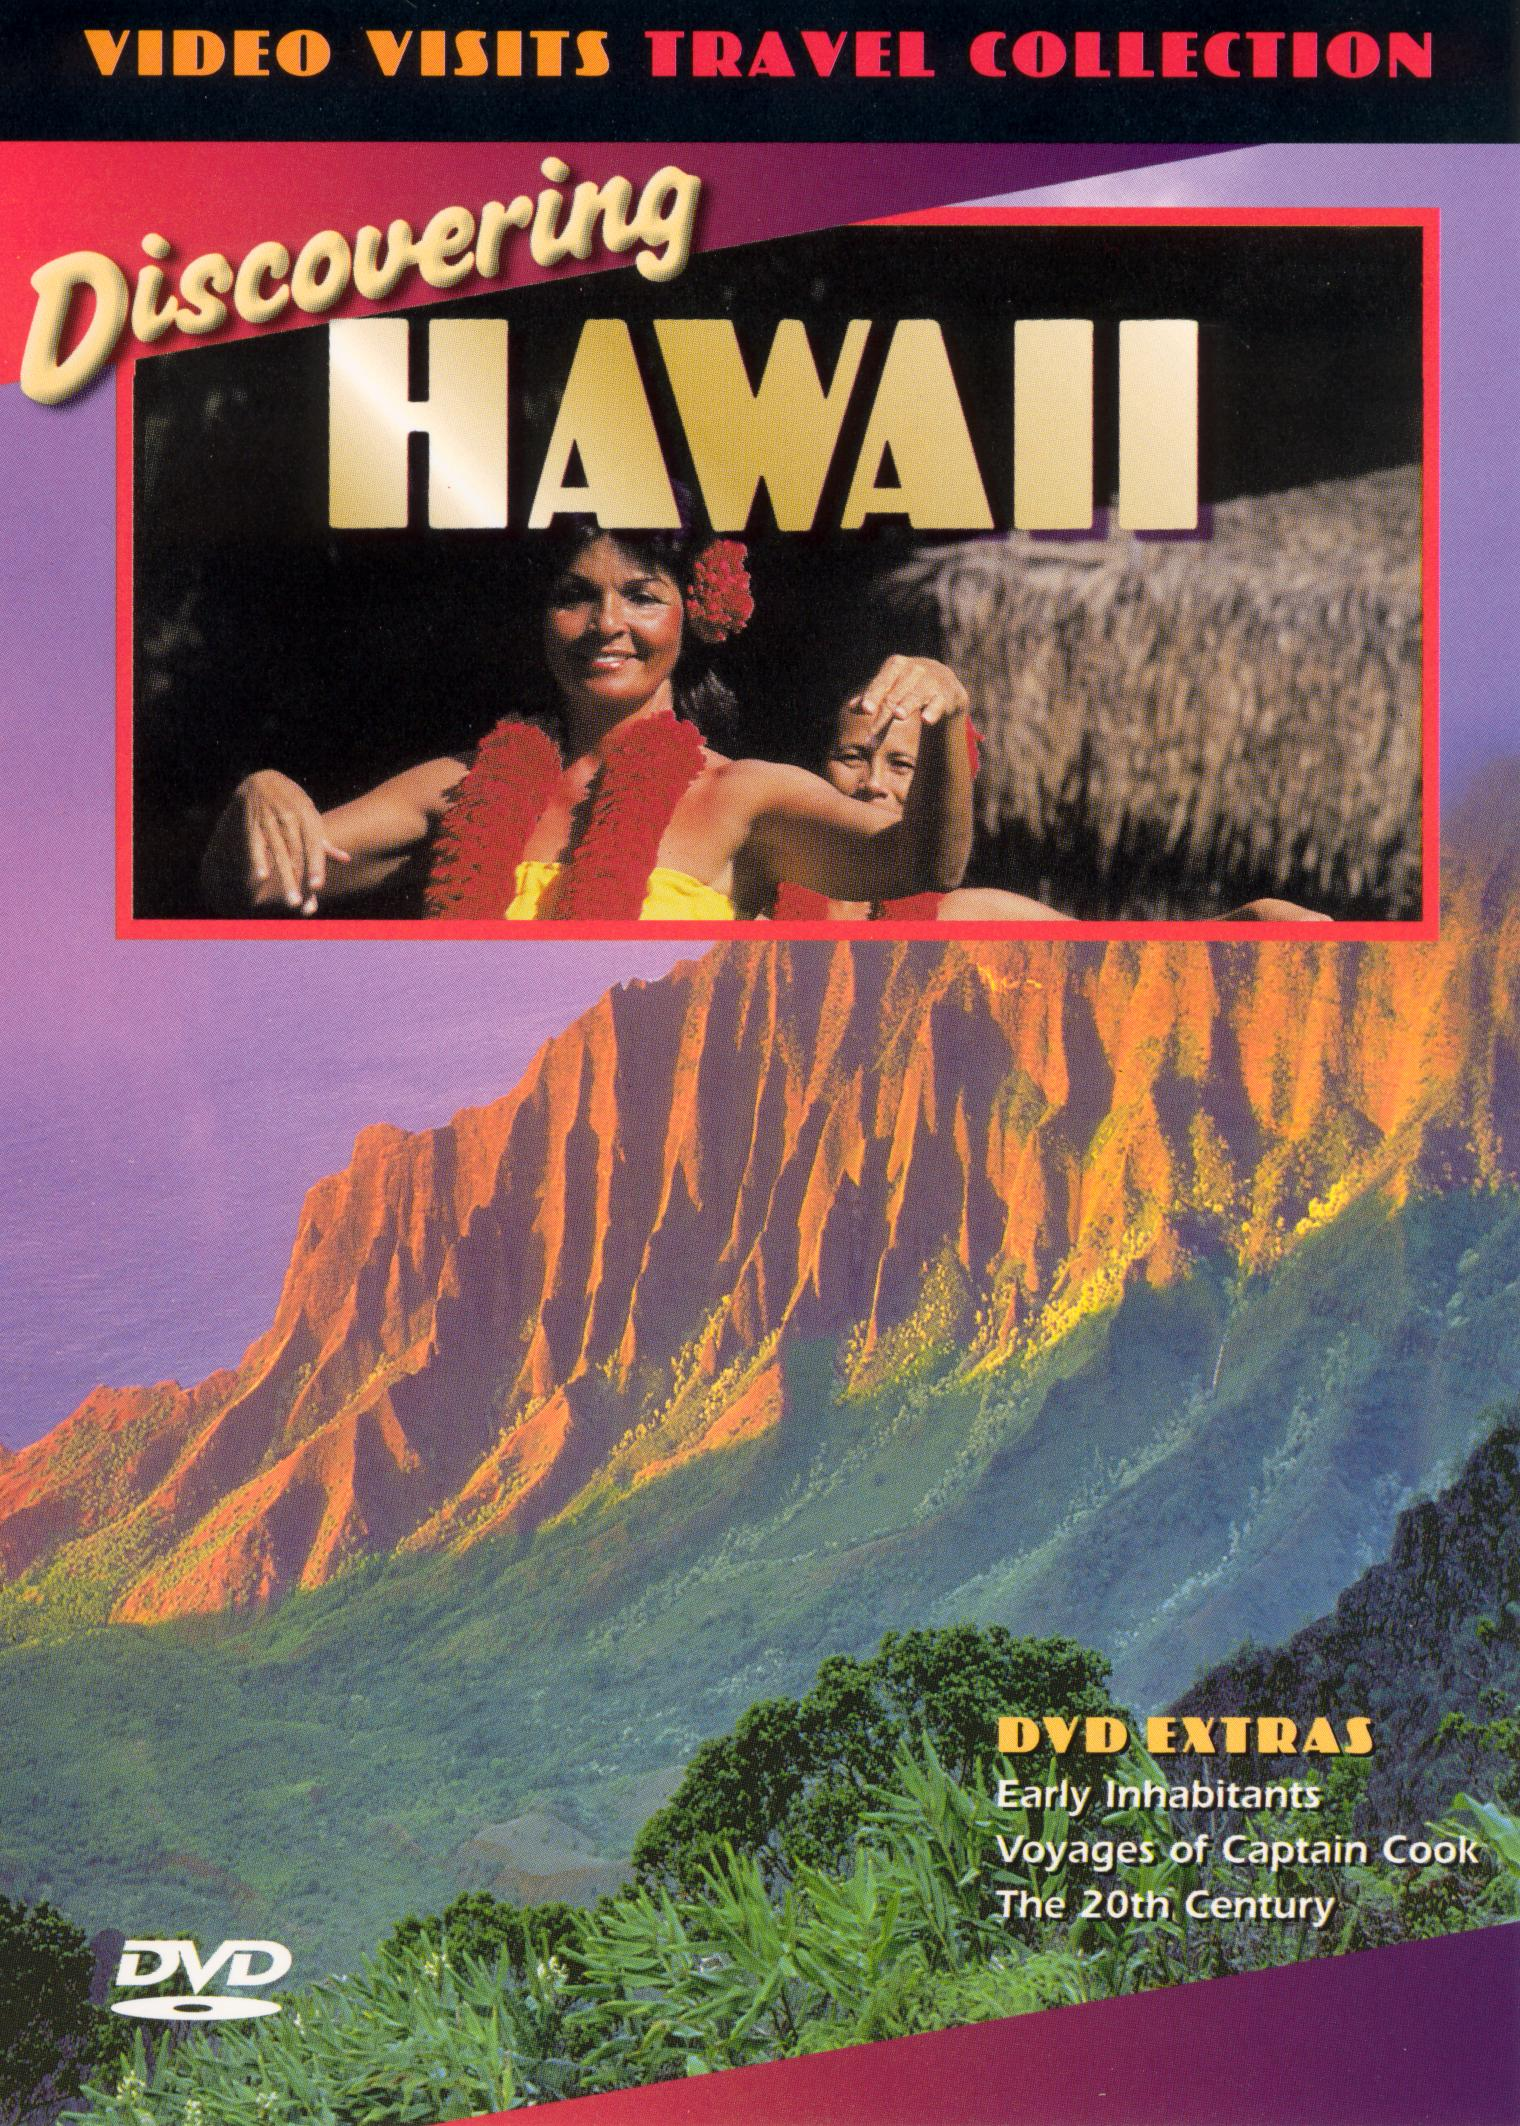 Video Visits Travel Collection: Discovering Hawaii